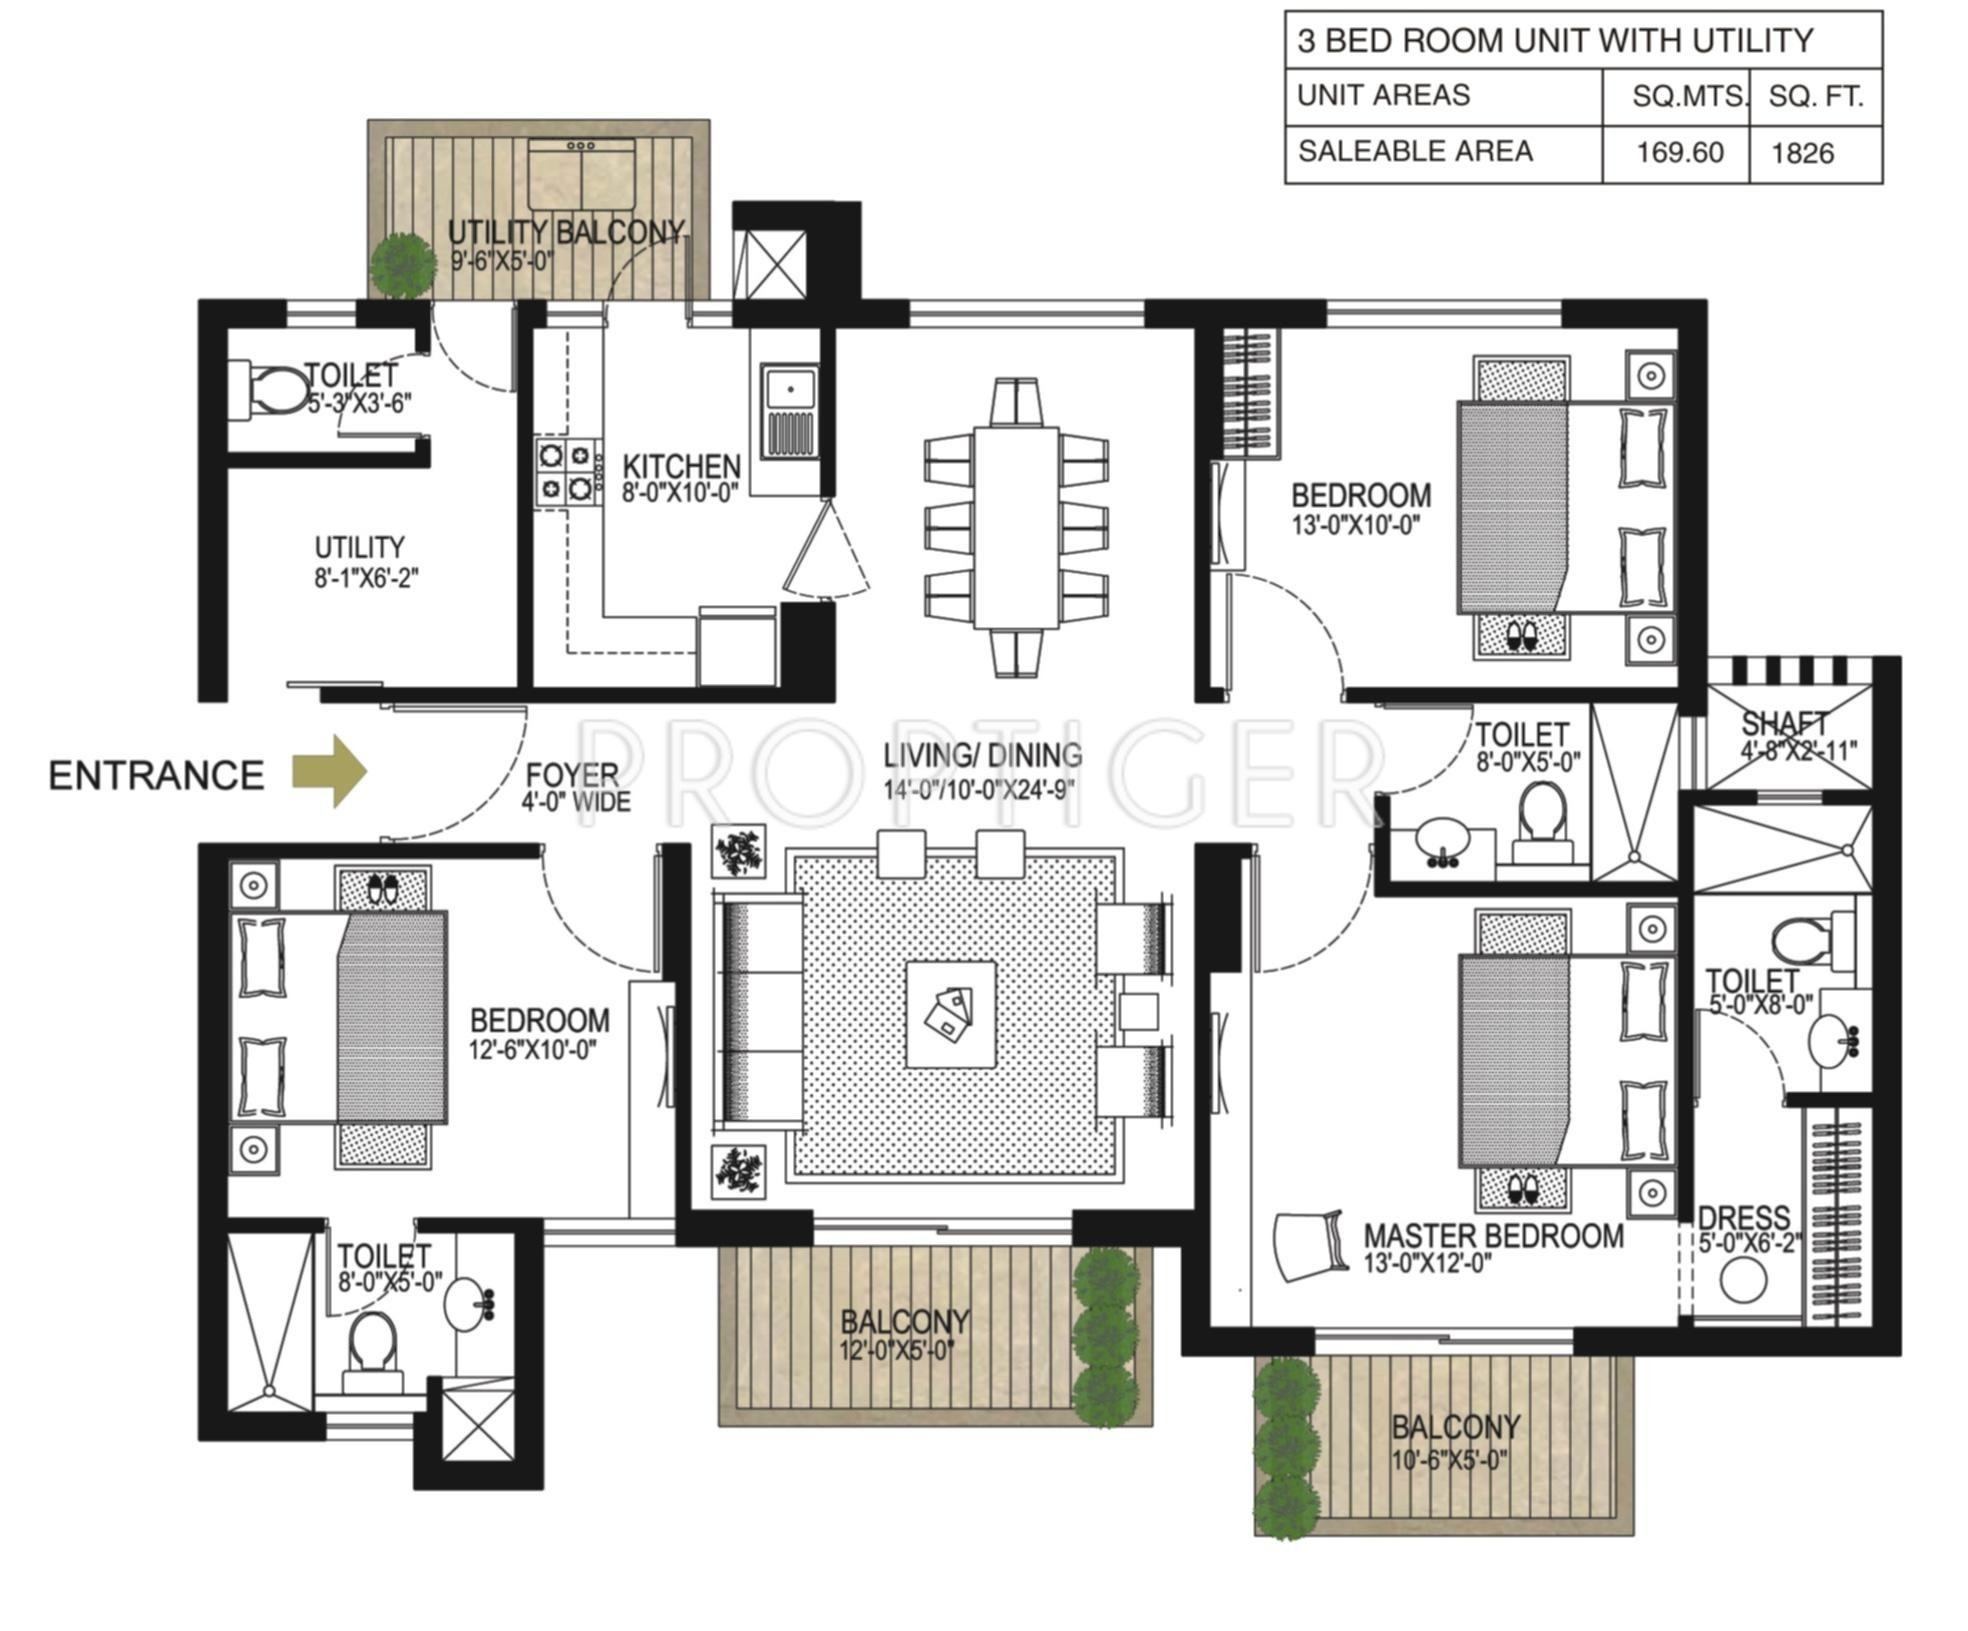 28 house design 30 x 45 sbd cosmoscity sbd cosmoscity my house design 30 x 45 45 ft x 40 house plans arts